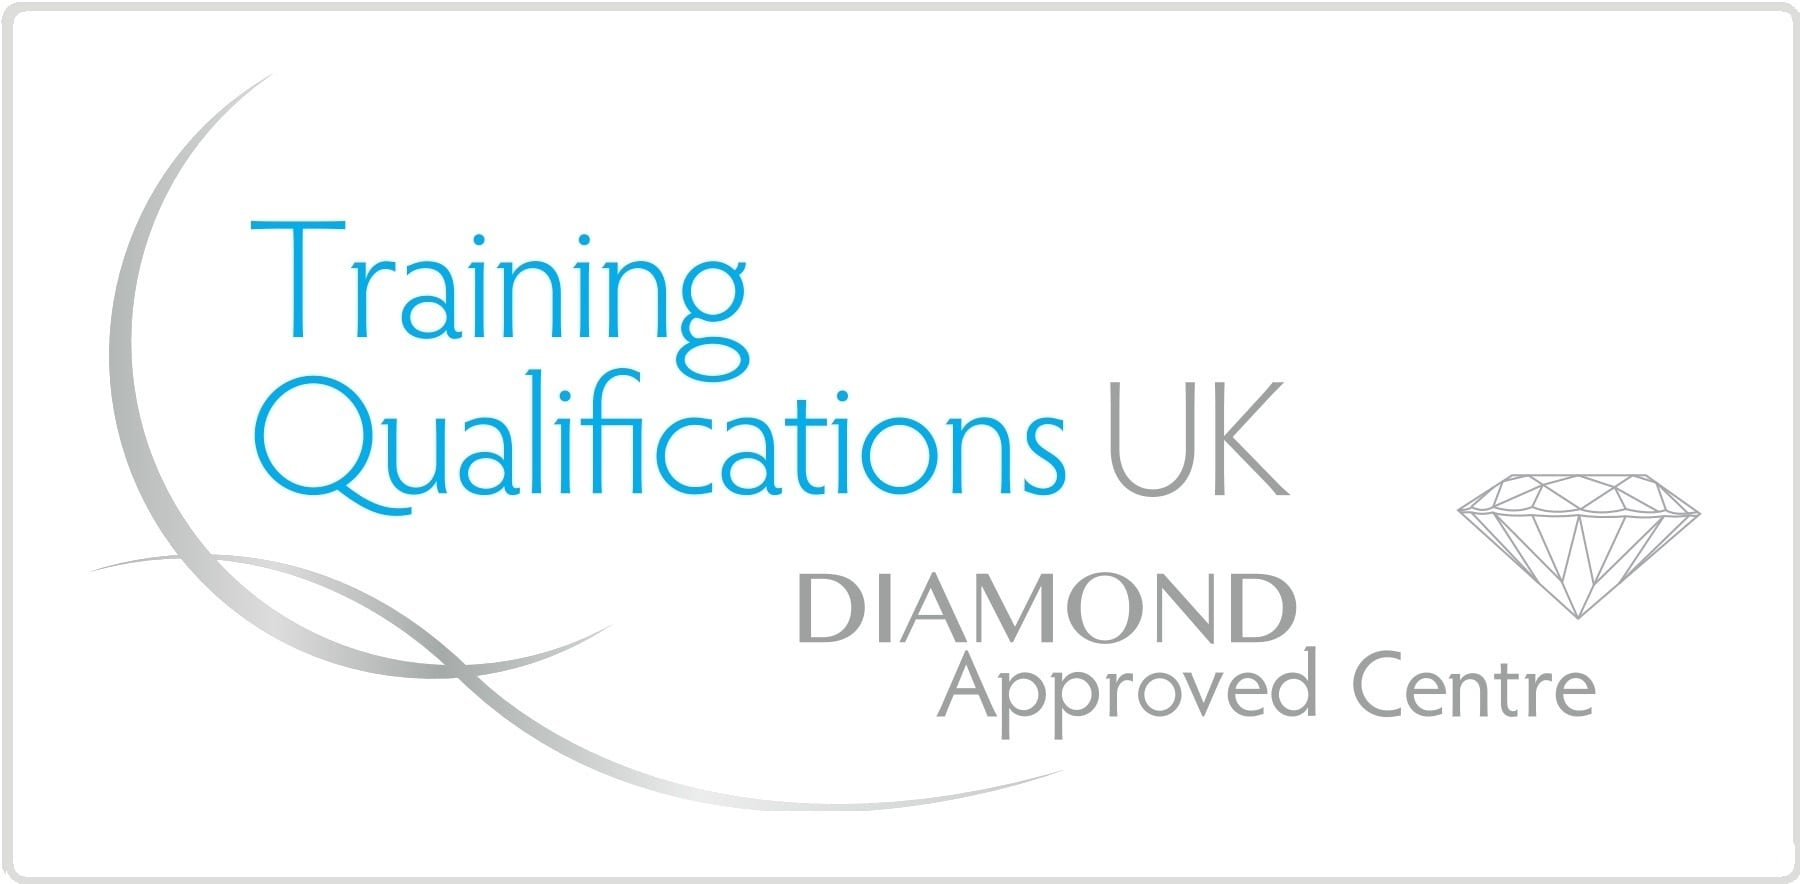 Tquk diamond logo